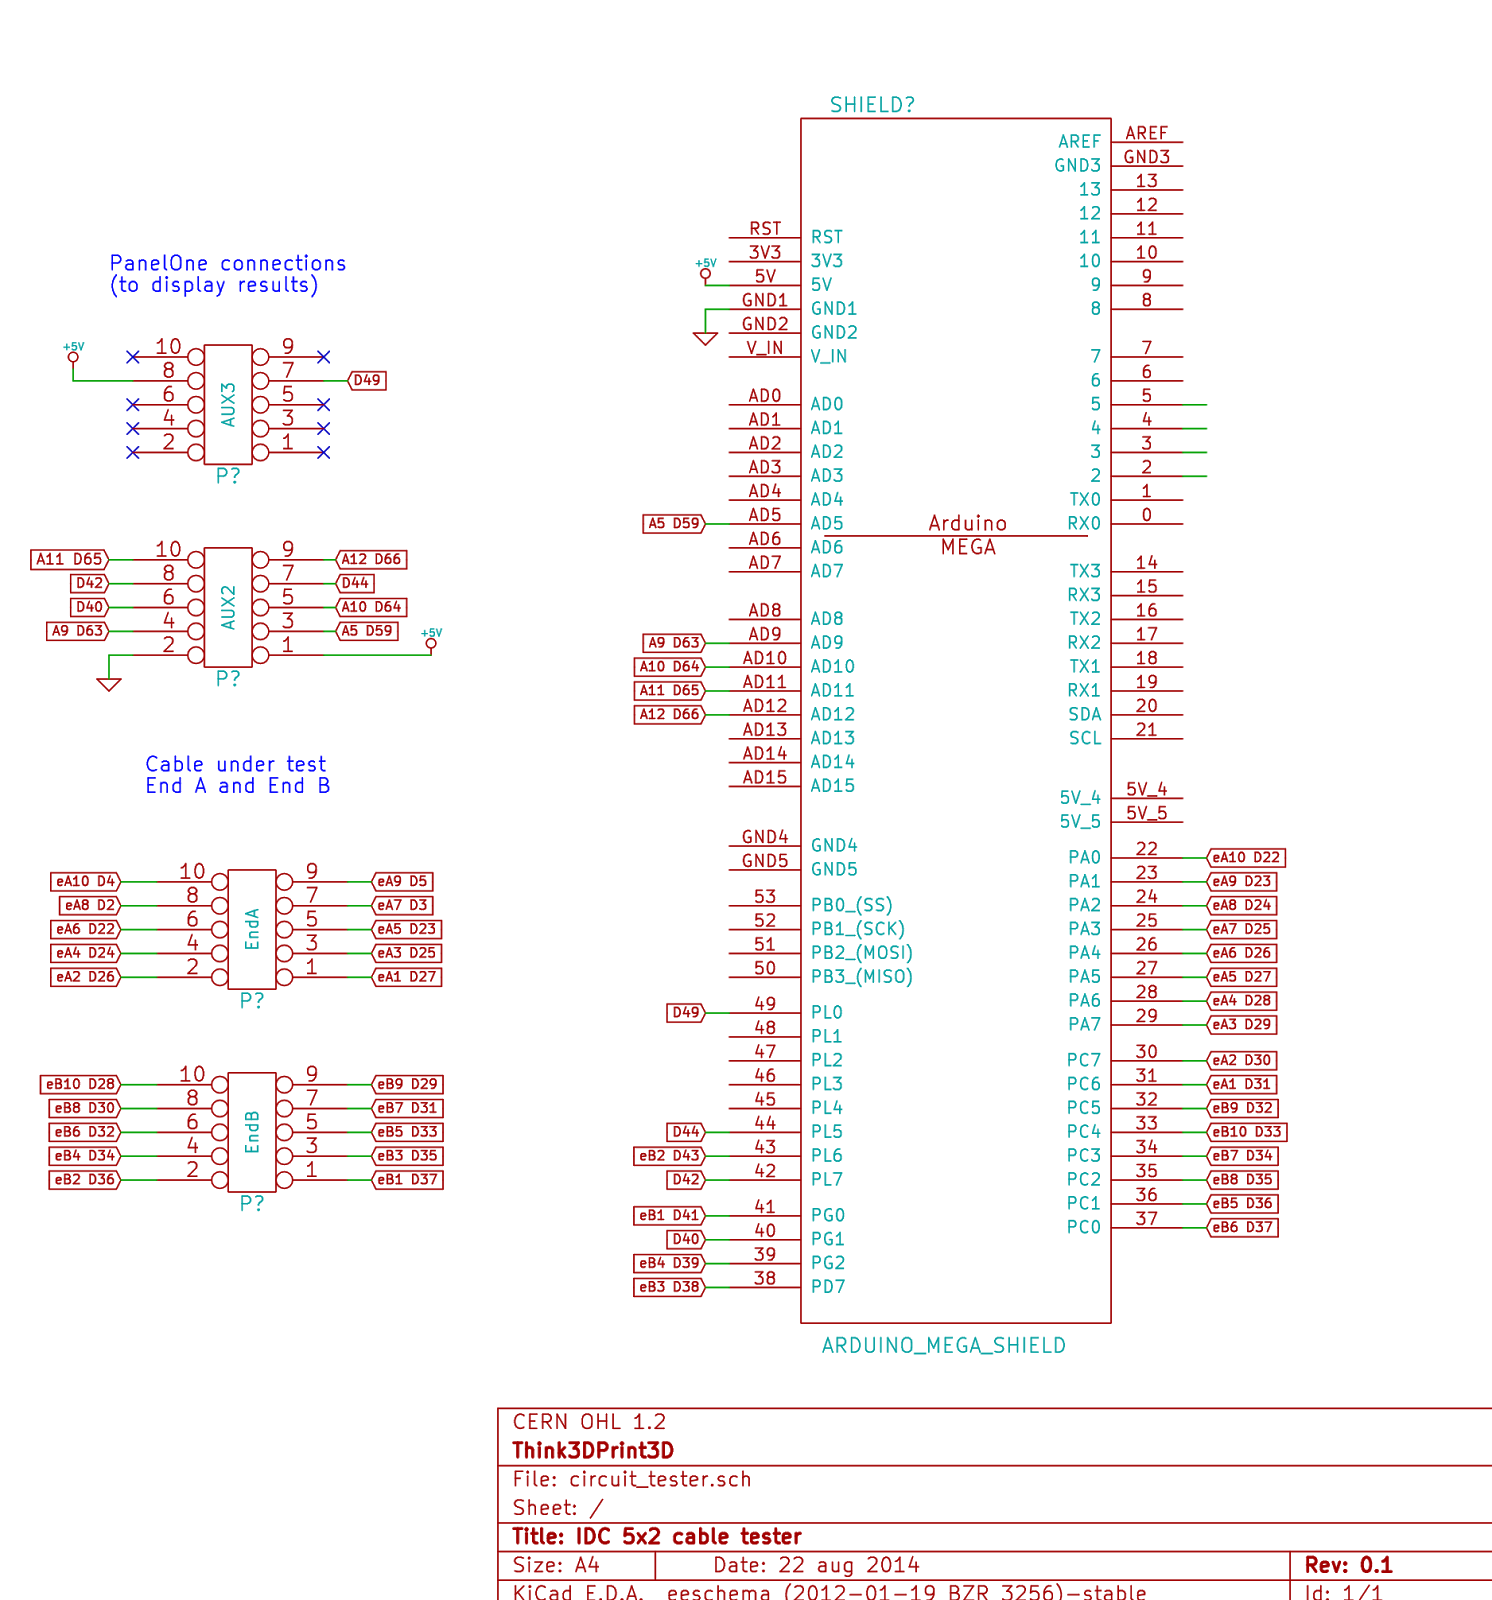 medium resolution of it uses the internal pullup resistors on the arduino pins so no external components are required other than the connecting wires and headers